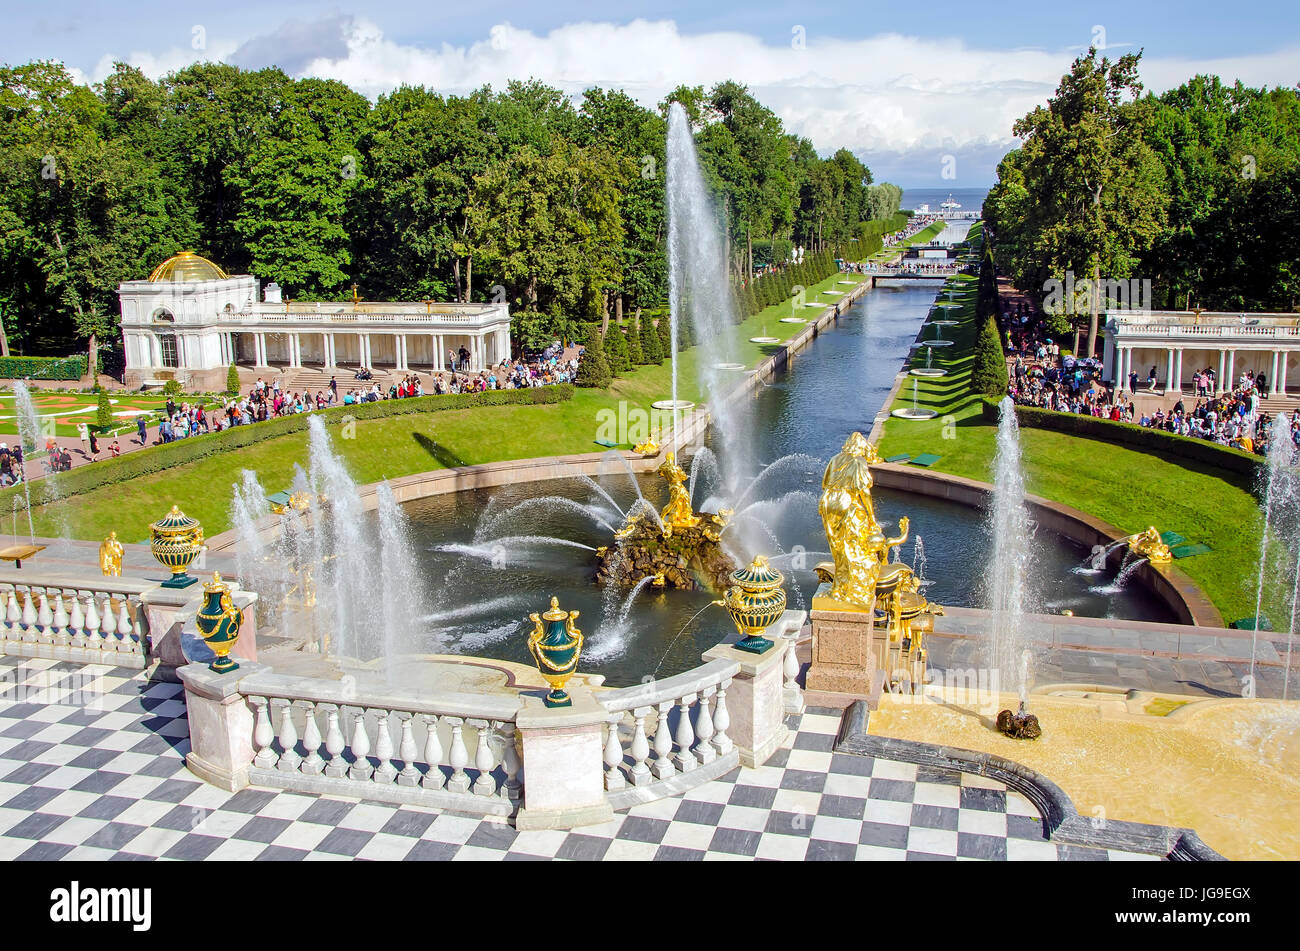 Peterhof Palace Grand cascata con fontane e giardini in estate si trova vicino a Saint Petersburg, Russia Immagini Stock